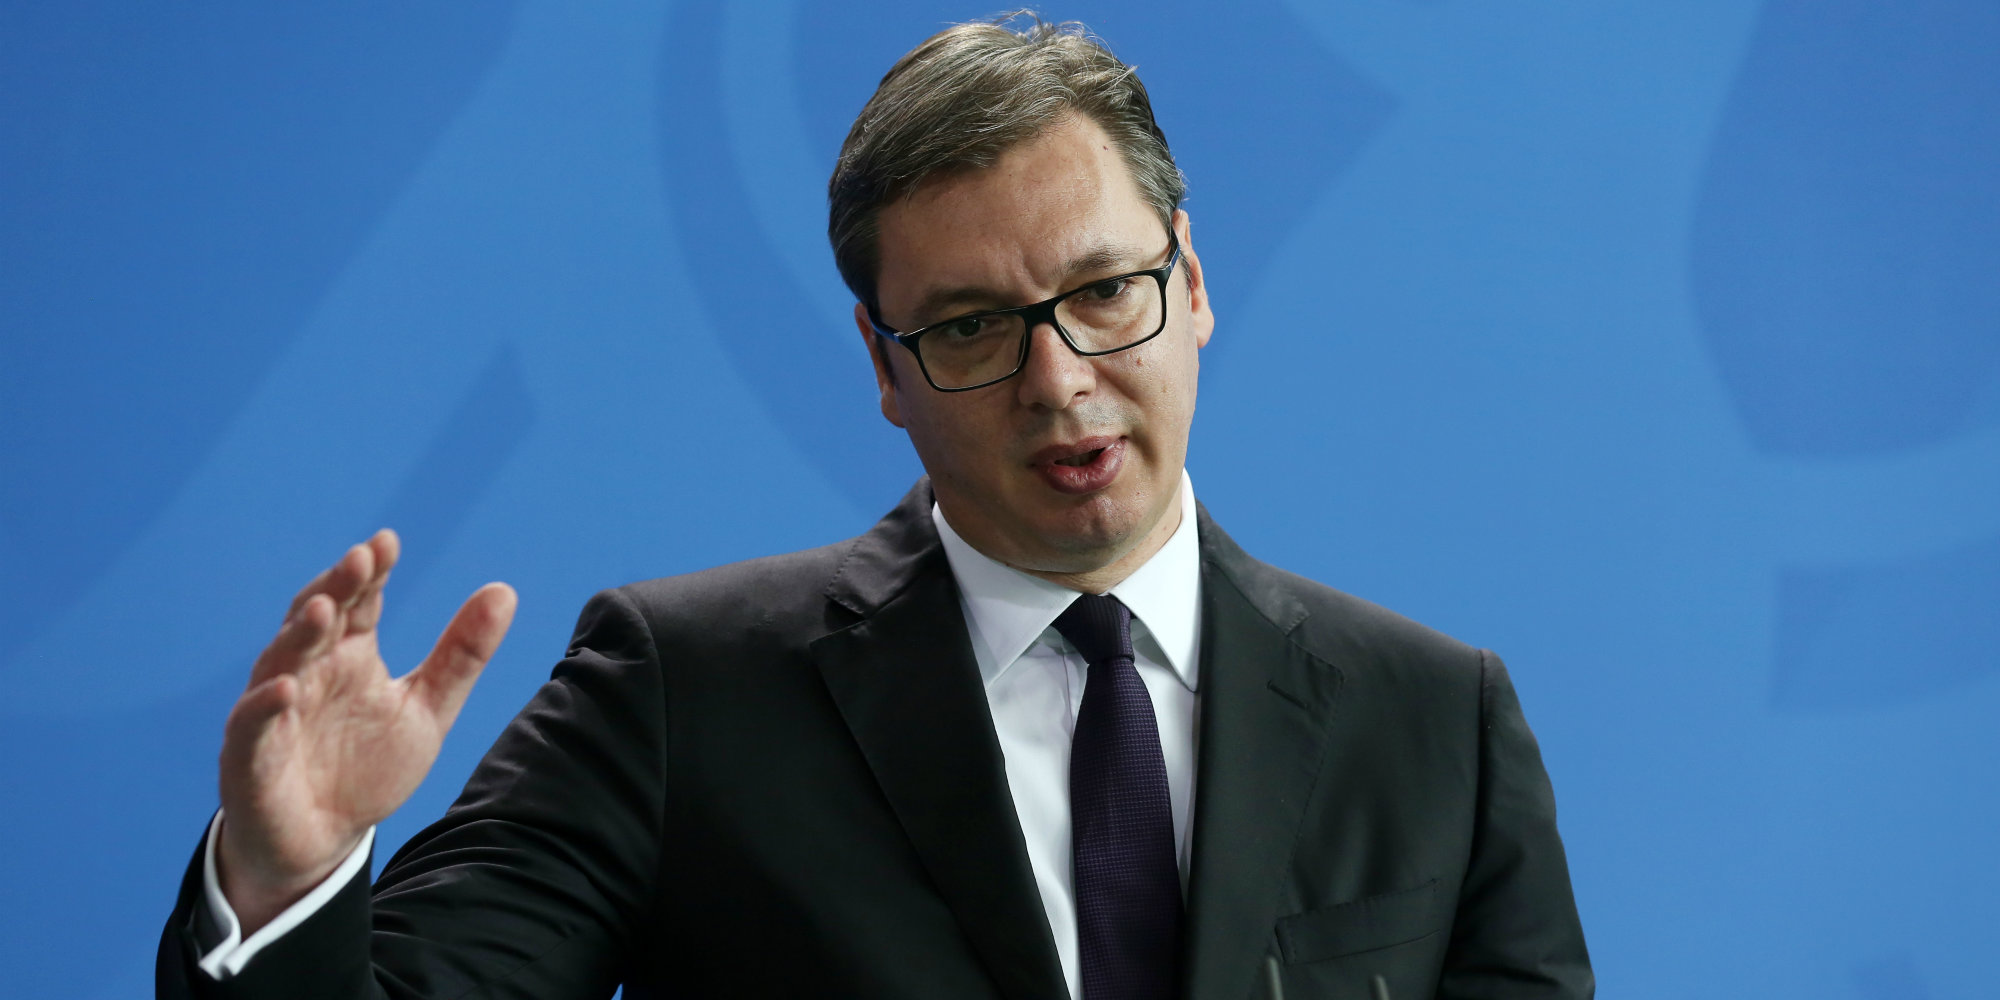 Vucic: November will be a difficult month for the Kosovo issue